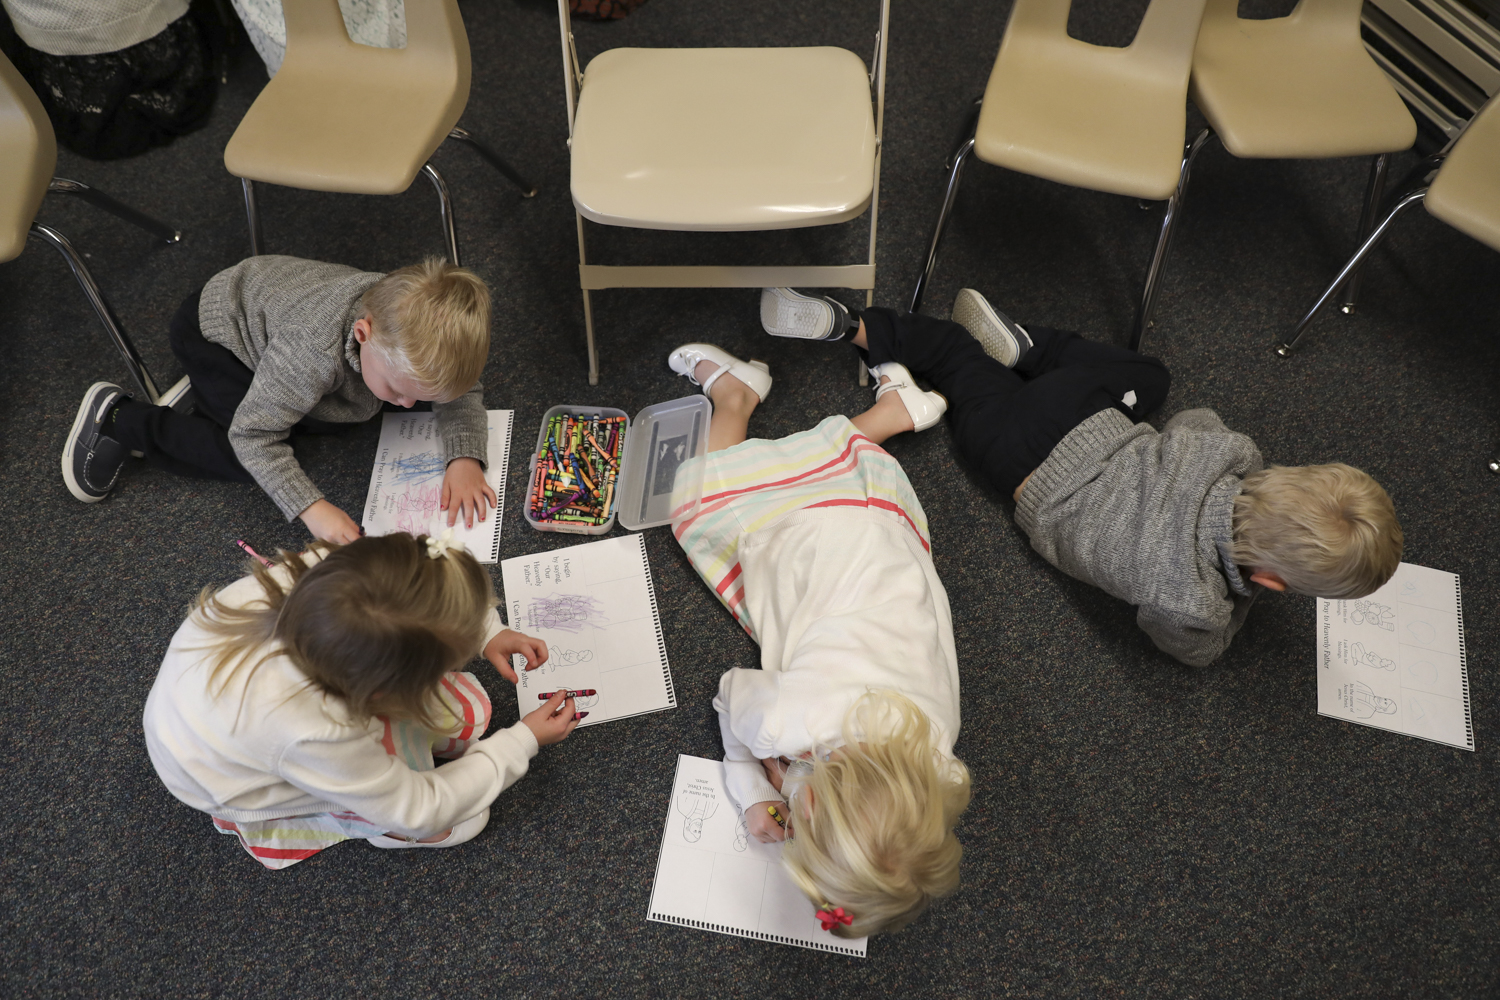 The quadruplets color during religion class on Oct. 23, 2016 at The church of Jesus Christ of Latter-day Saints Geneseo ward, Rochester Stake.